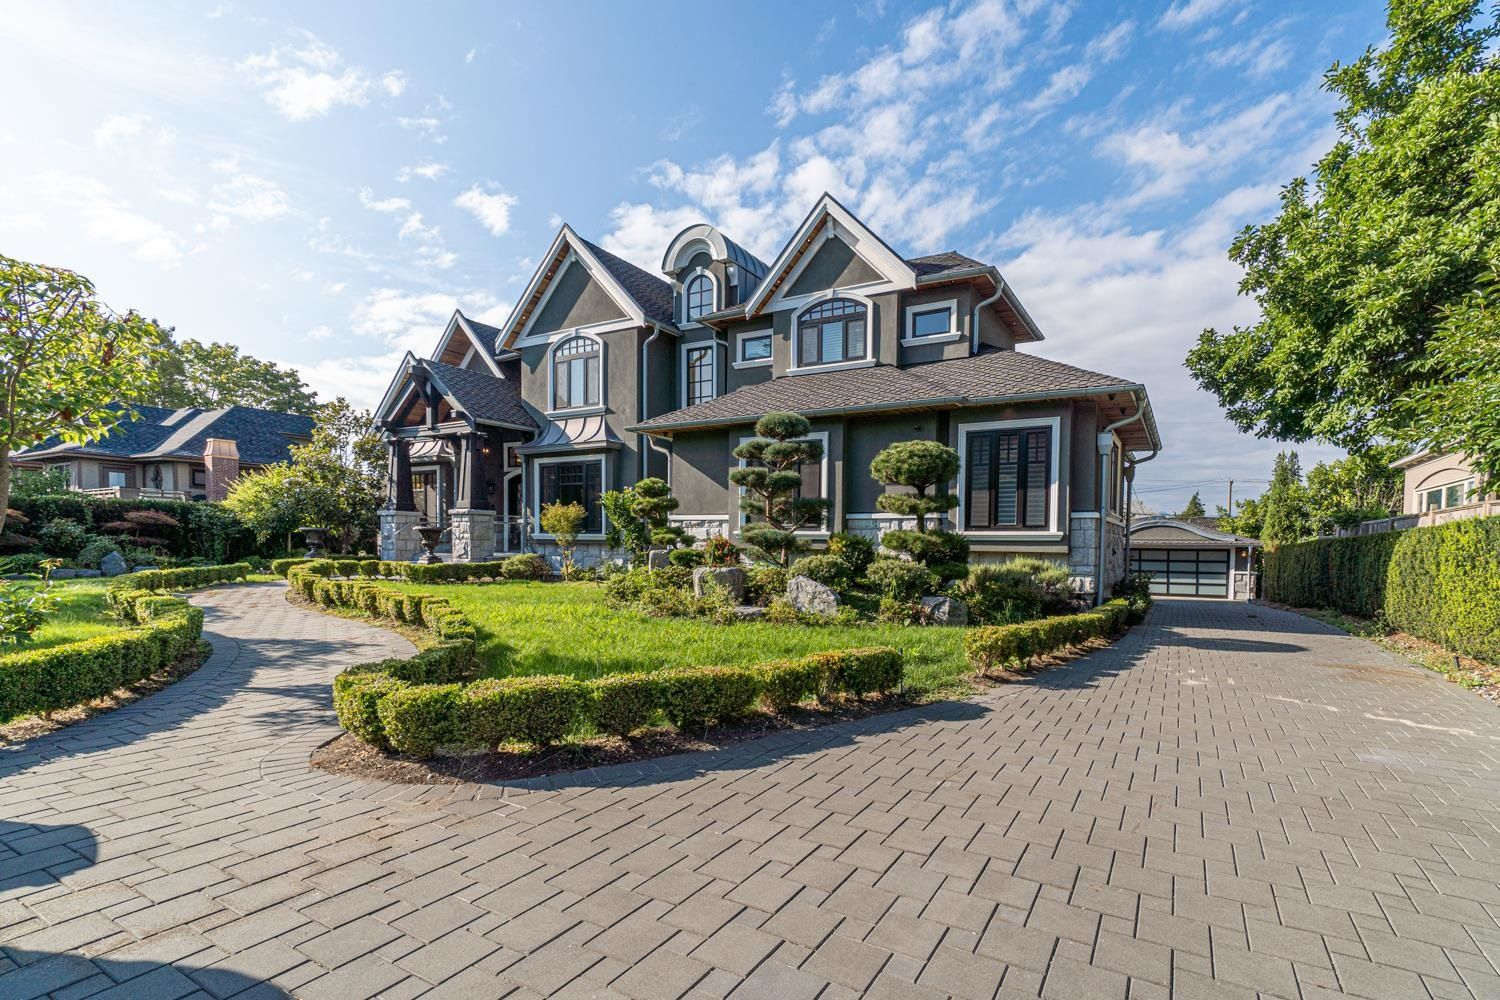 Main Photo: 1529 W 34TH Avenue in Vancouver: Shaughnessy House for sale (Vancouver West)  : MLS®# R2610815